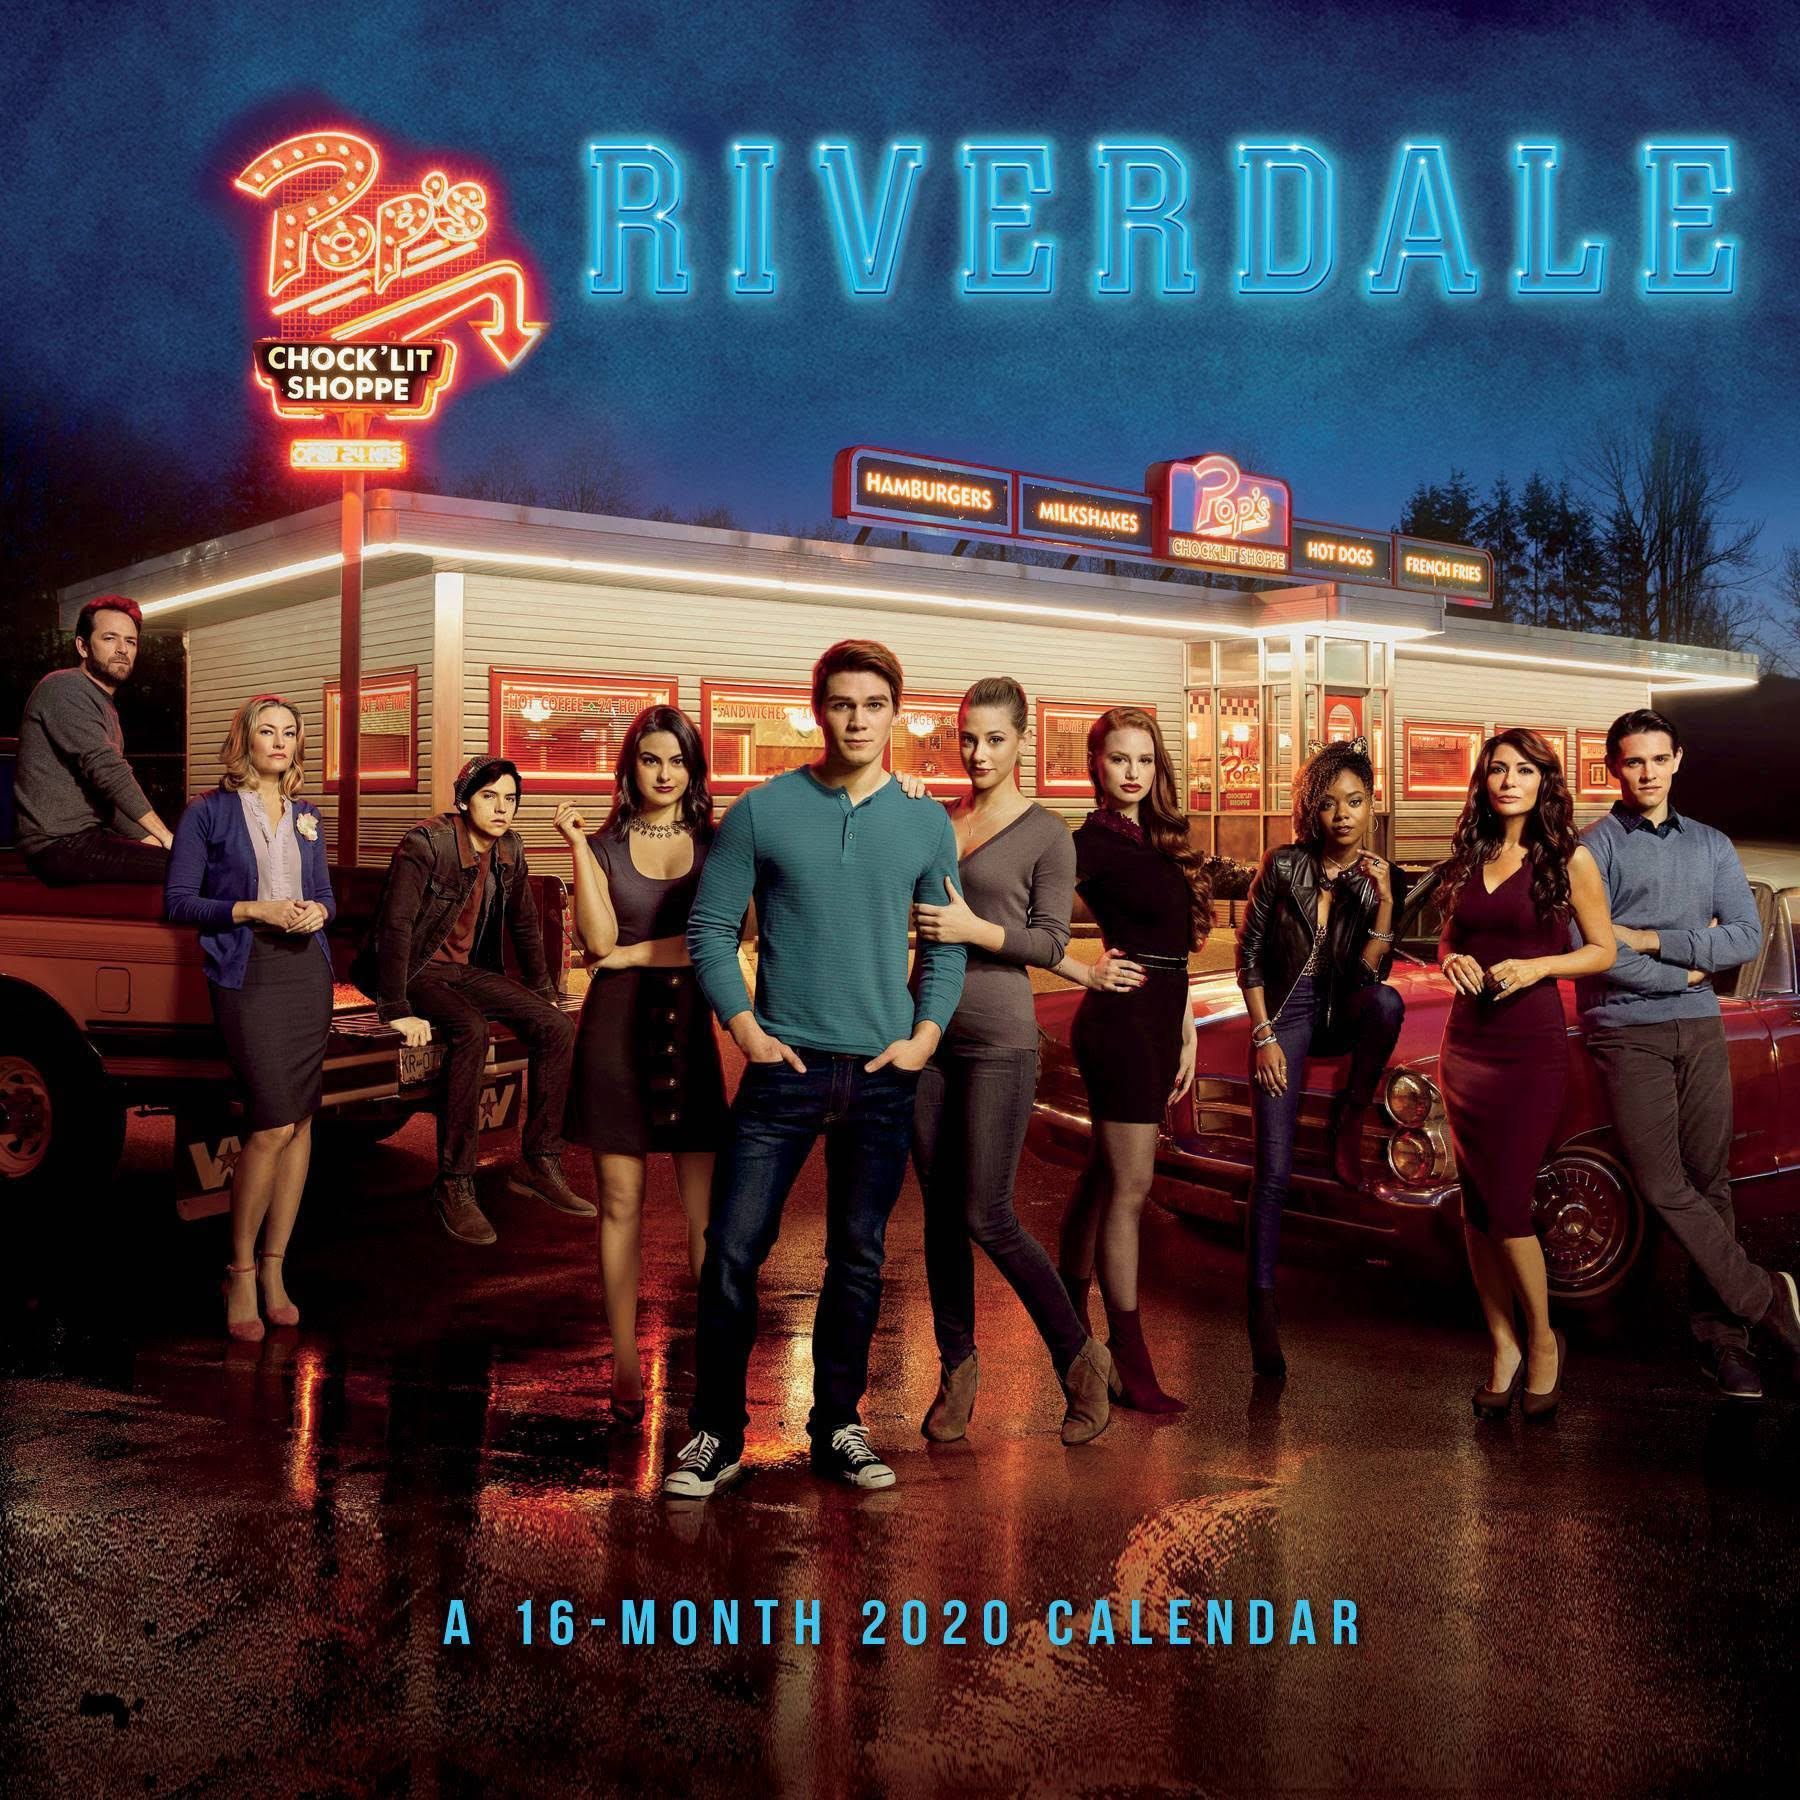 Trends International Riverdale 2020 Wall Calendar